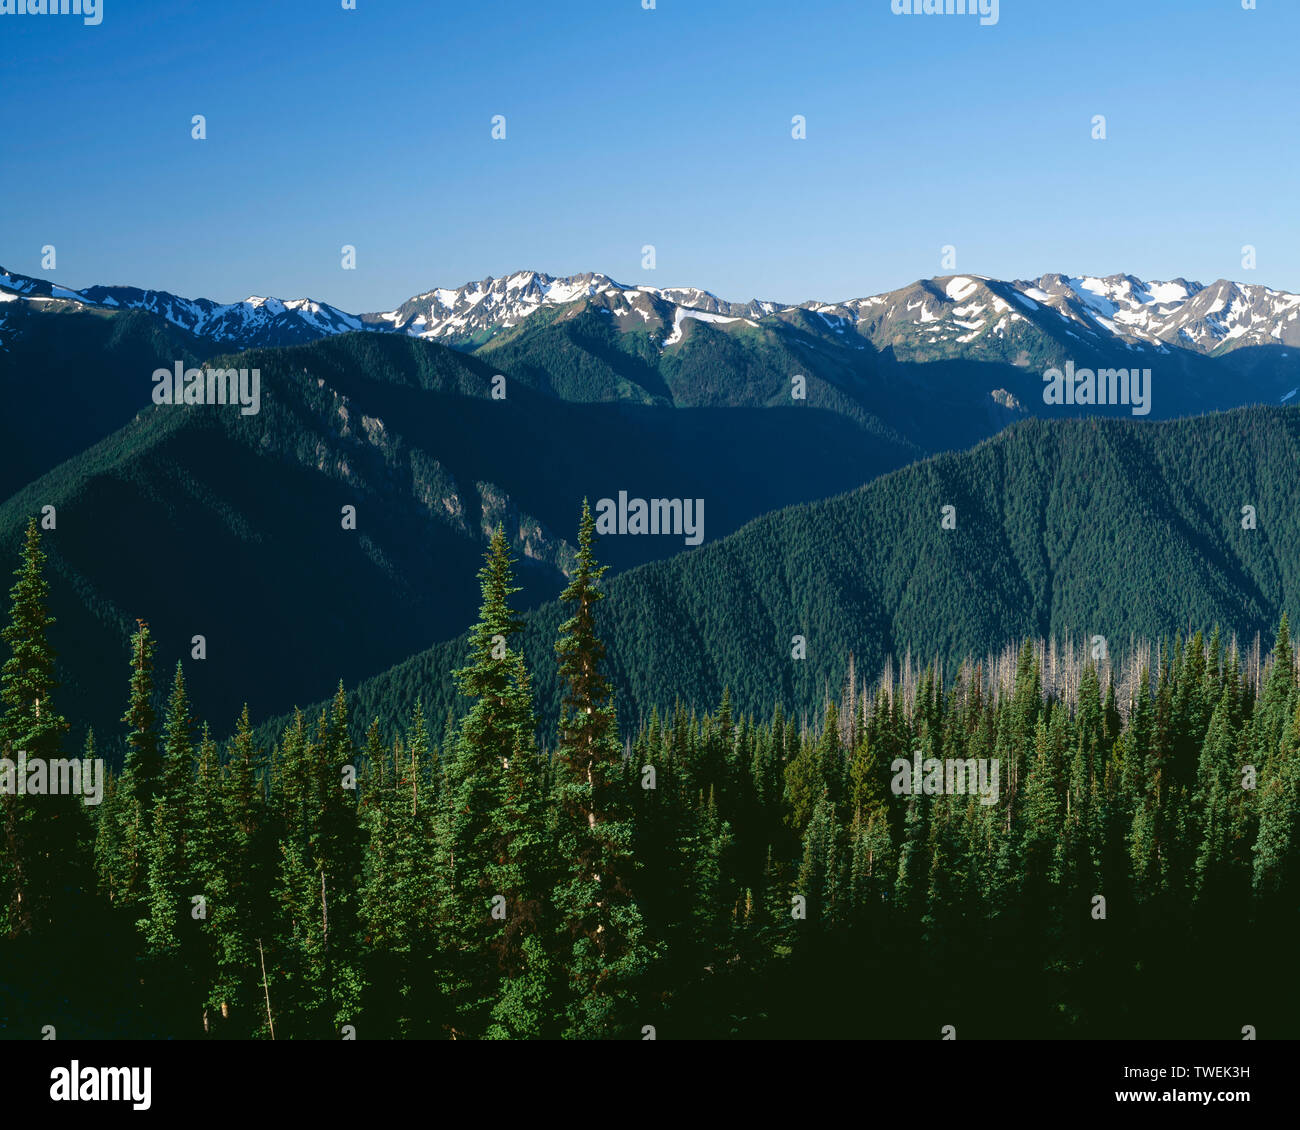 USA, Washington, Olympic National Park, Peaks and ridges of eastern Olympic Mountains, view south from Blue Mountain. - Stock Image